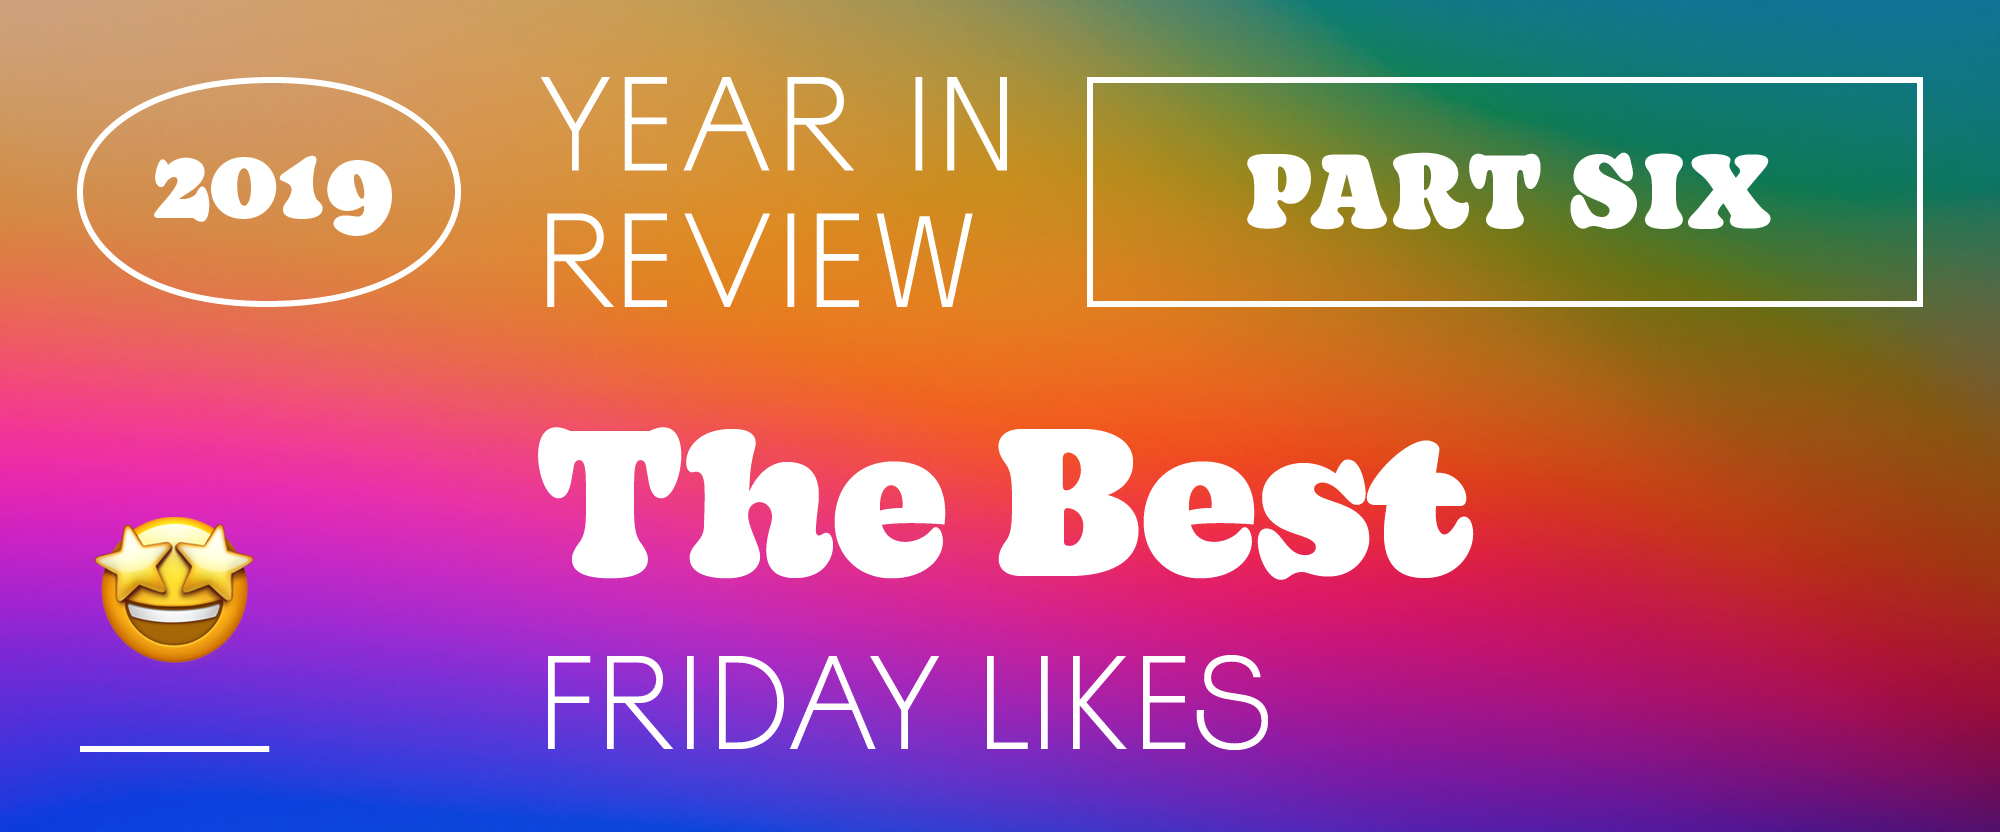 The Best and Worst Identities of 2019, Part 6: The Best Friday Likes